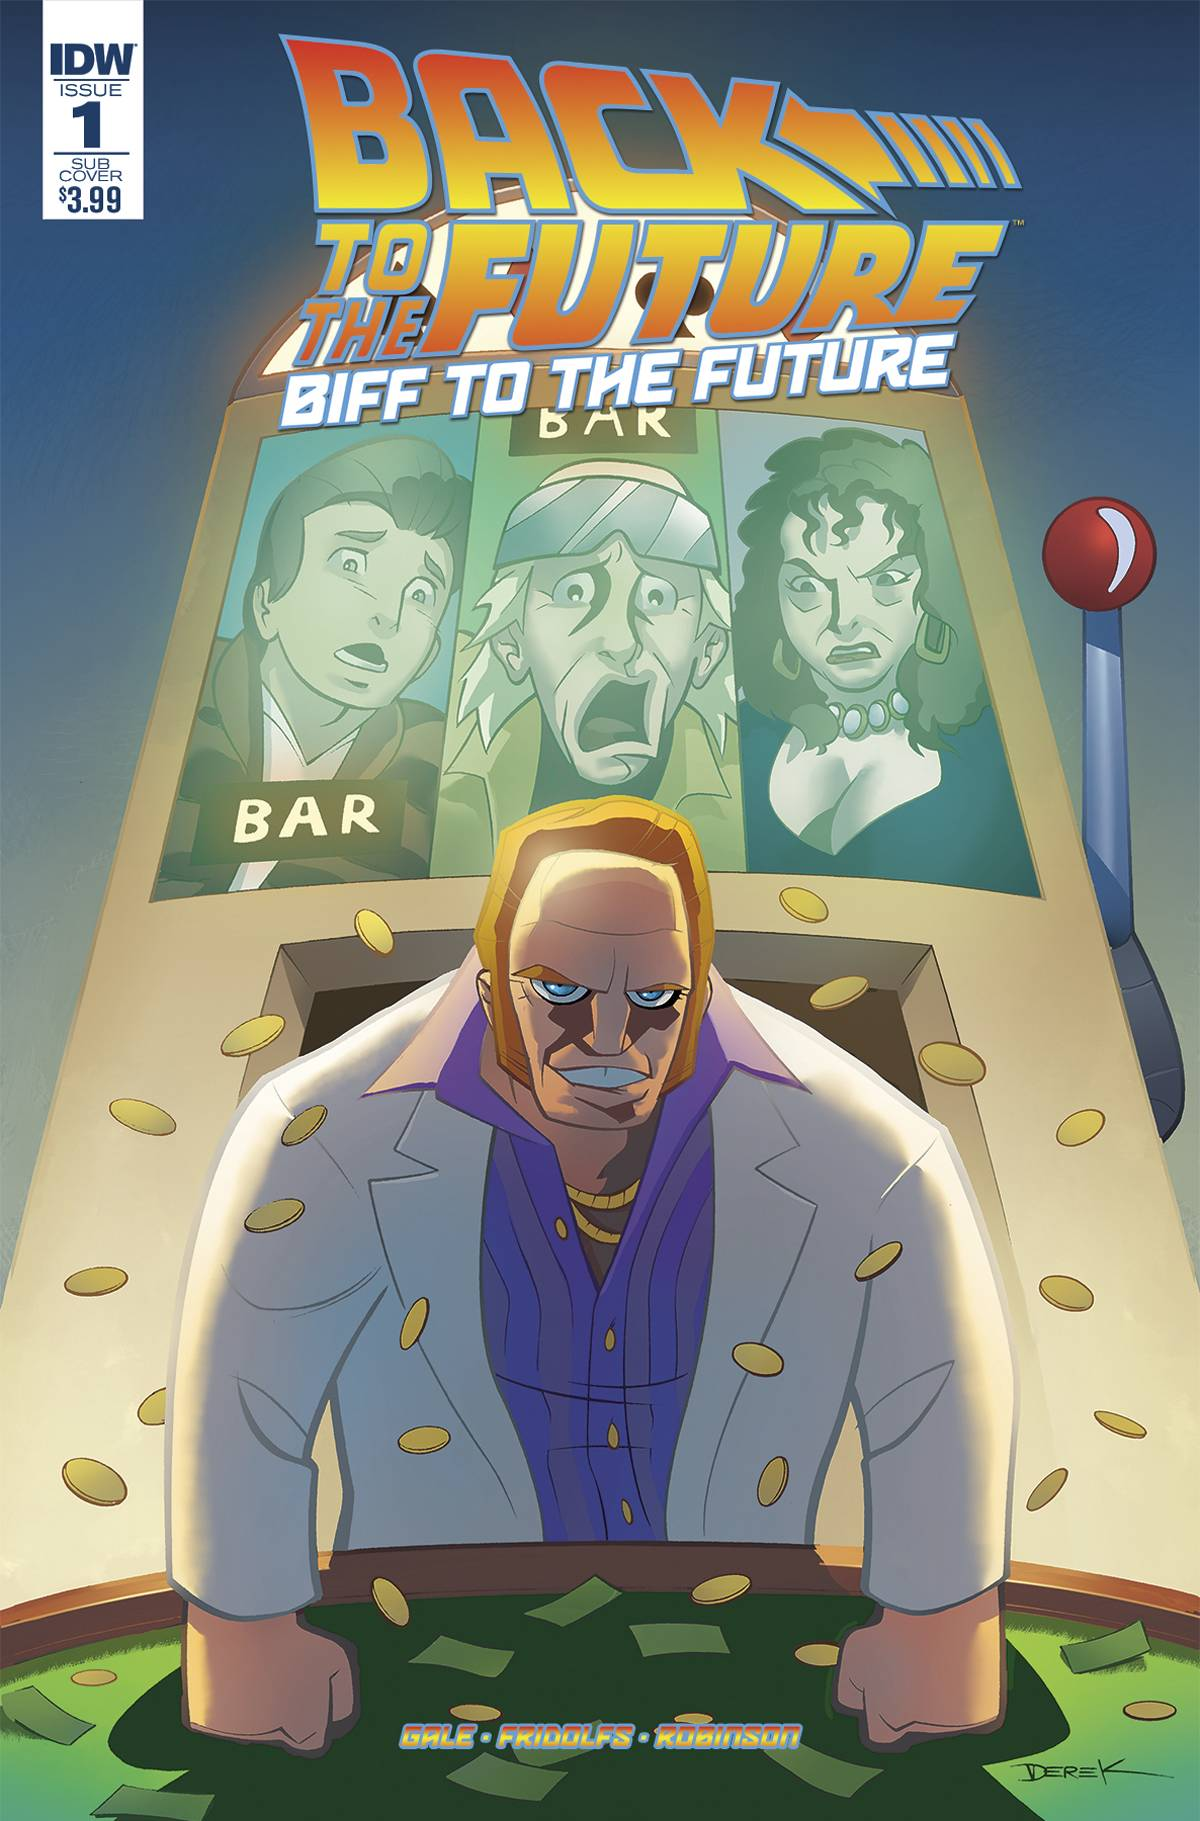 BACK TO THE FUTURE BIFF TO THE FUTURE #1